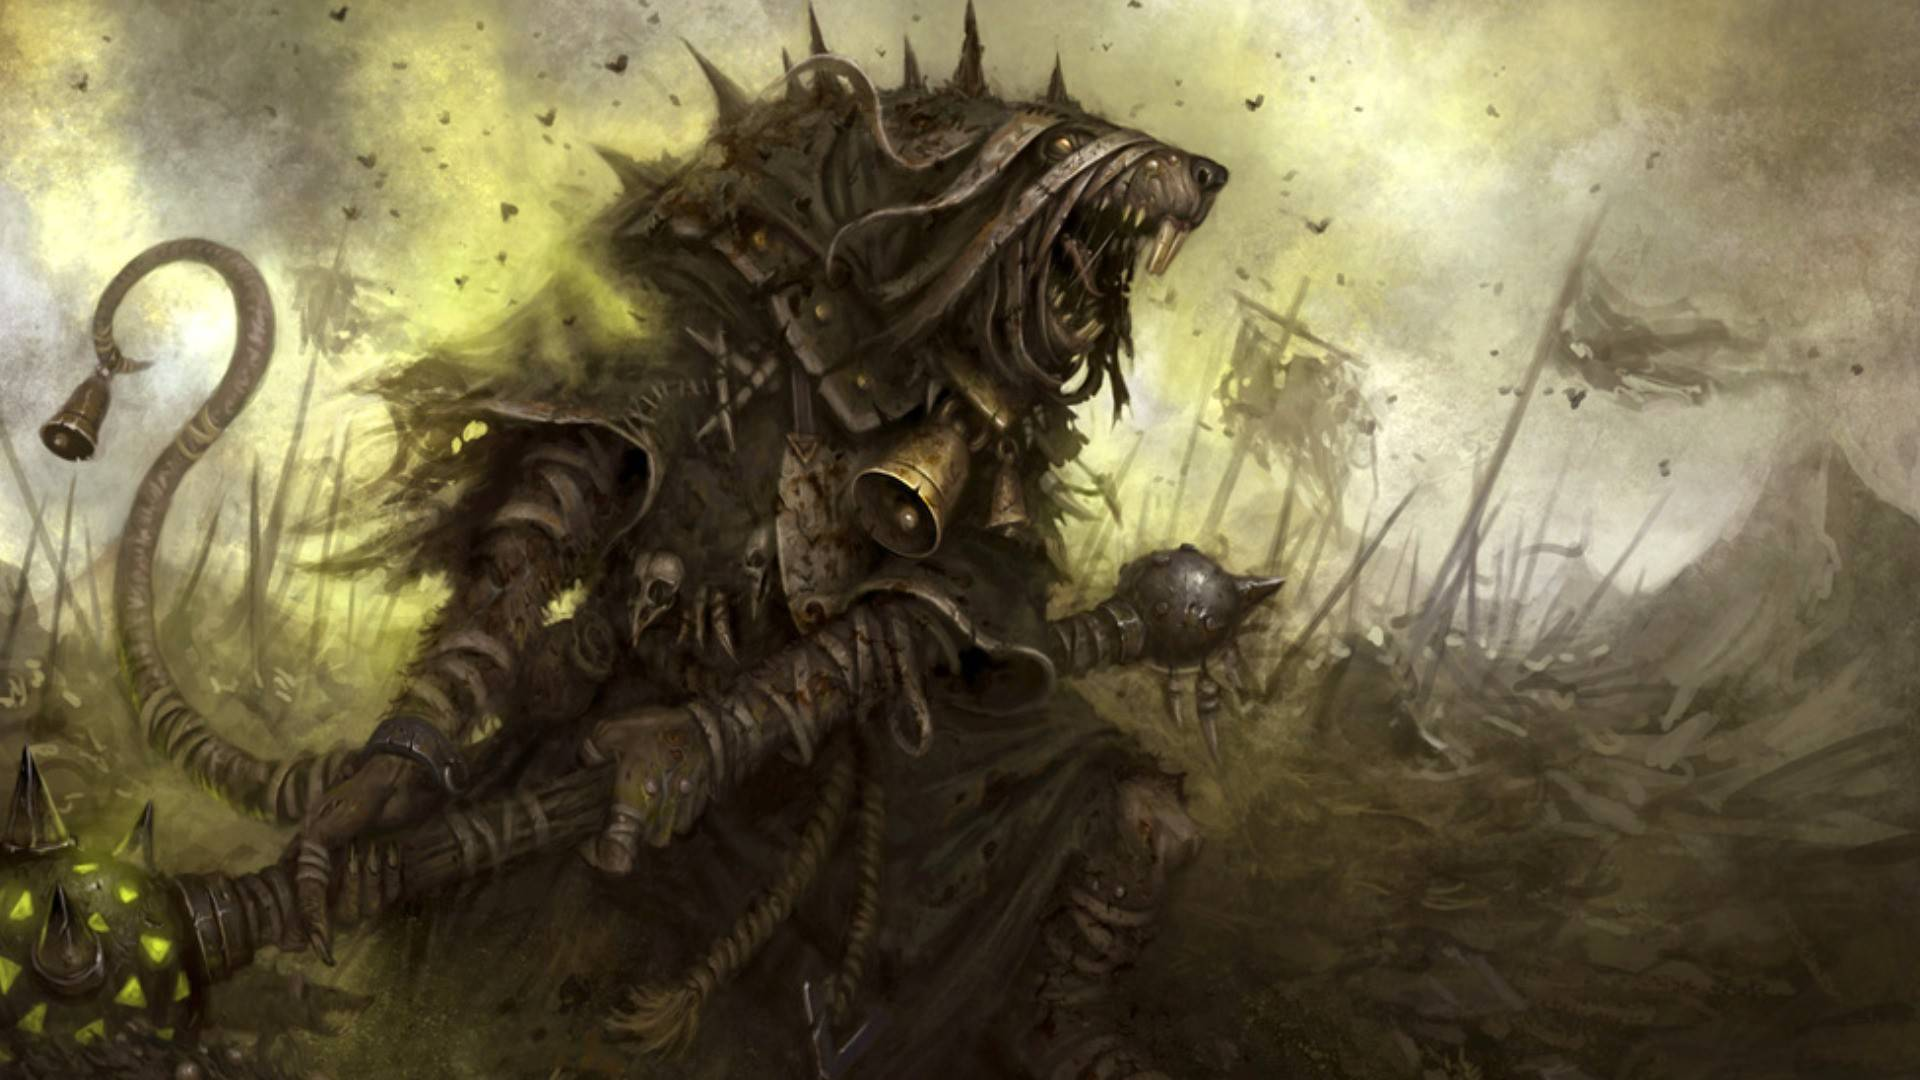 Warhammer Fantasy 19201080 Wallpaper 2368751 1920x1080